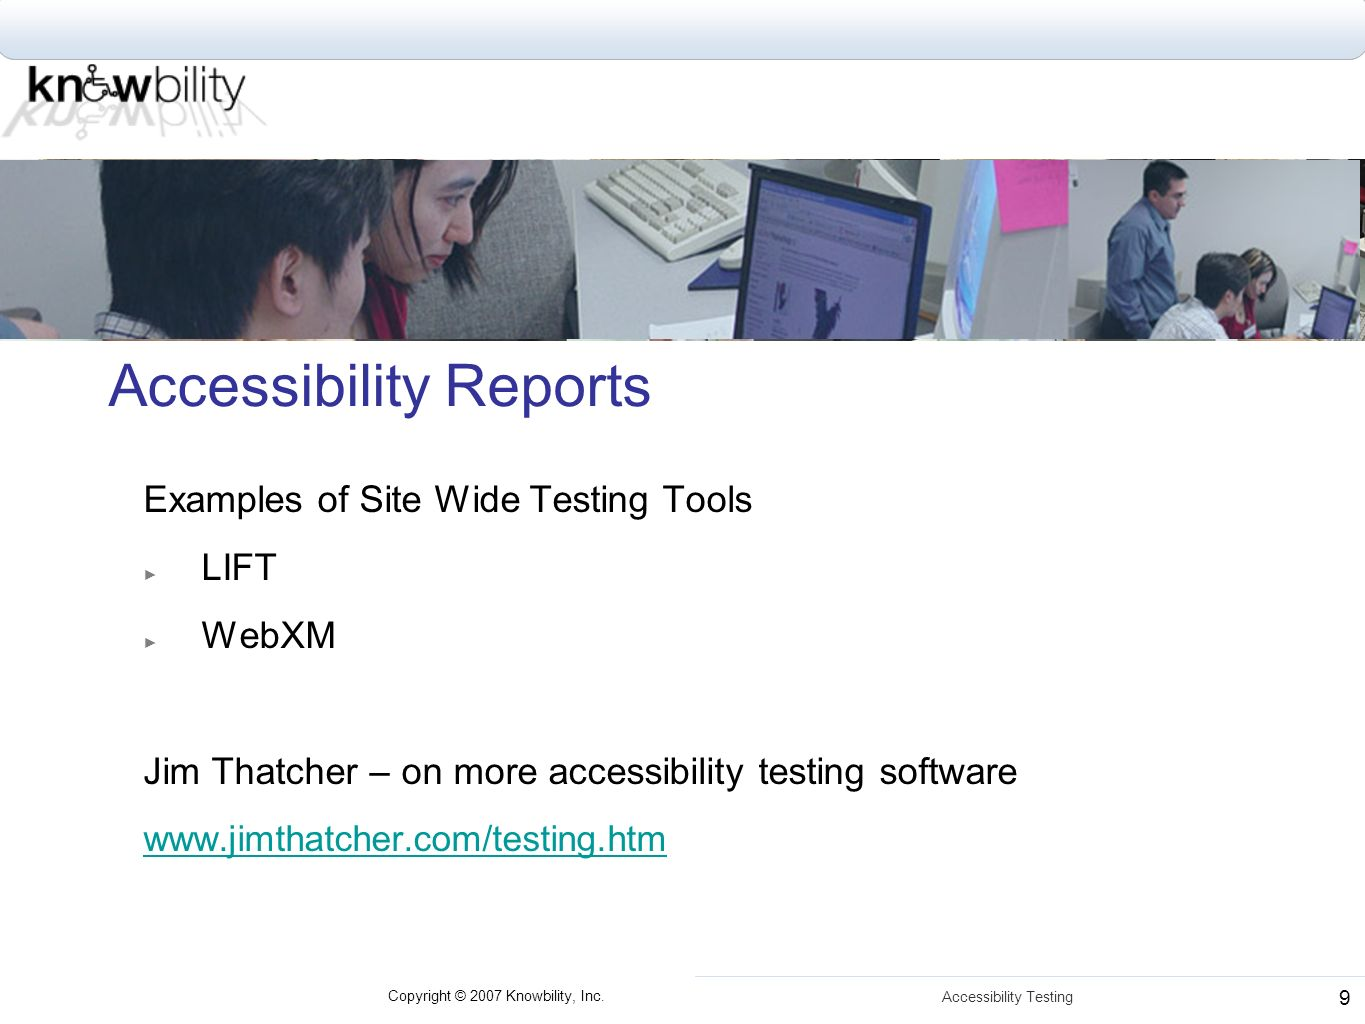 Copyright © 2007 Knowbility, Inc. Accessibility Testing 9 Accessibility Reports Examples of Site Wide Testing Tools LIFT WebXM Jim Thatcher – on more